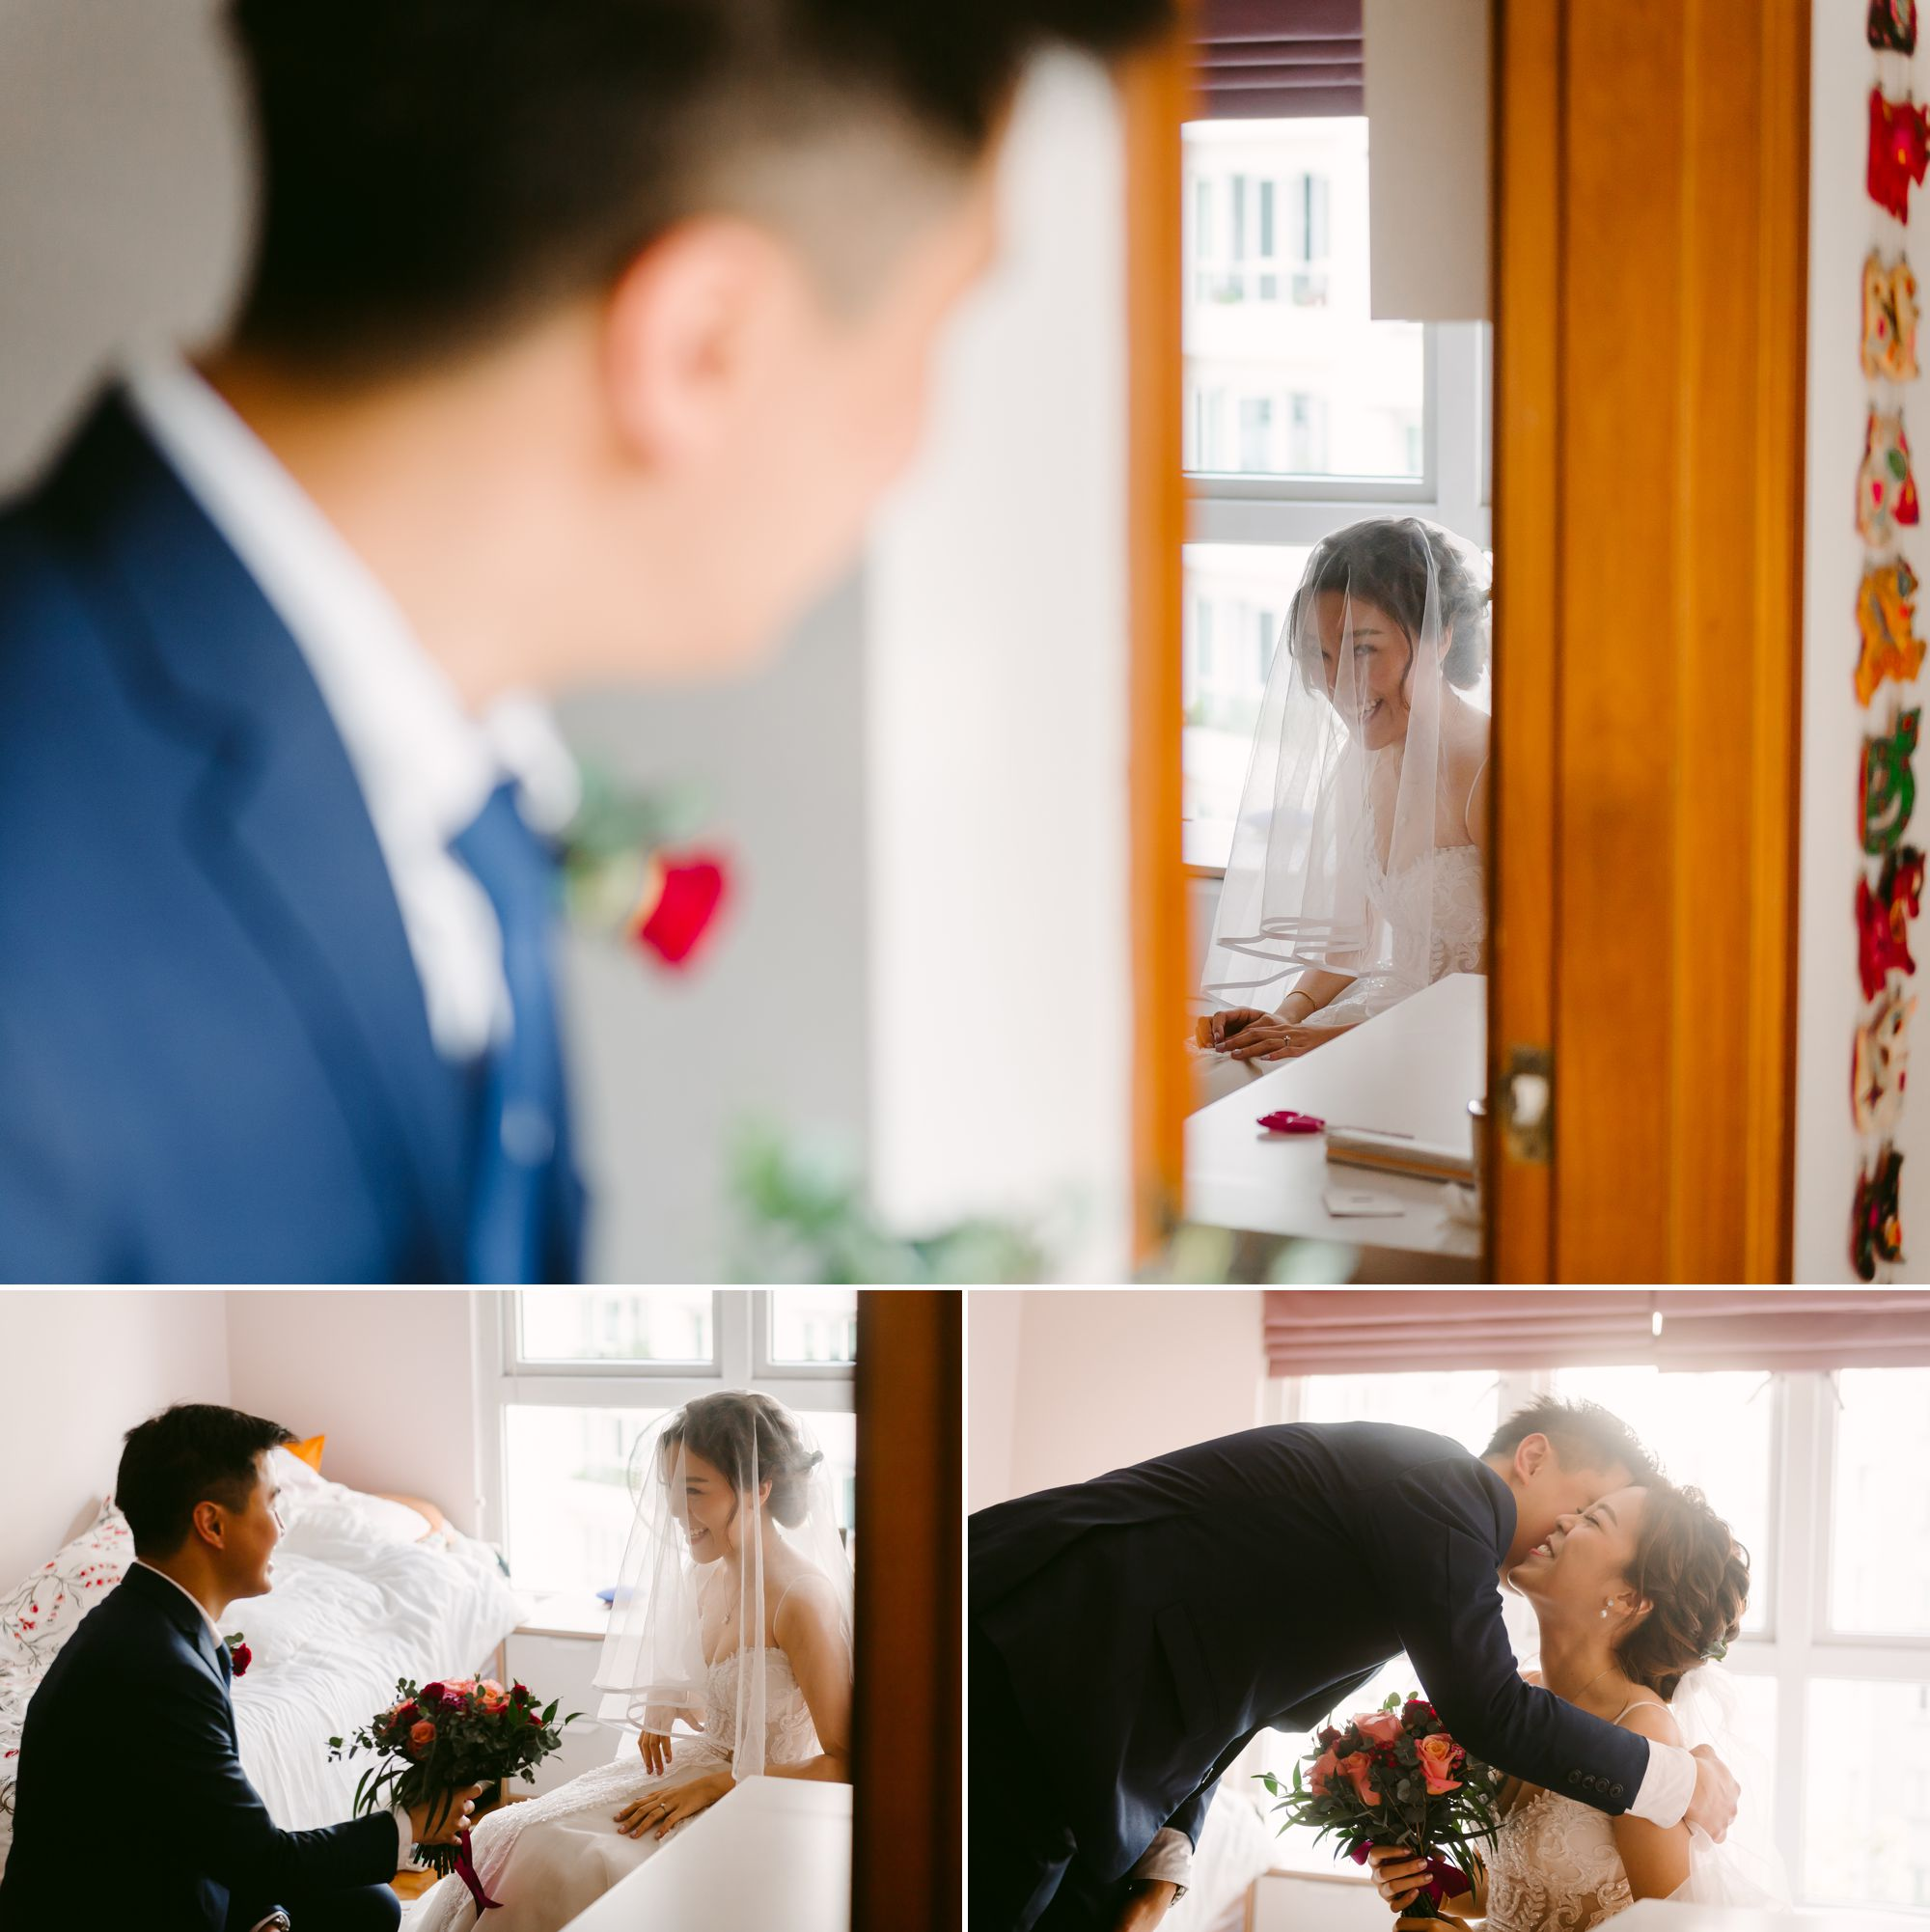 conrad_wedding_Singapore_ 16.jpg